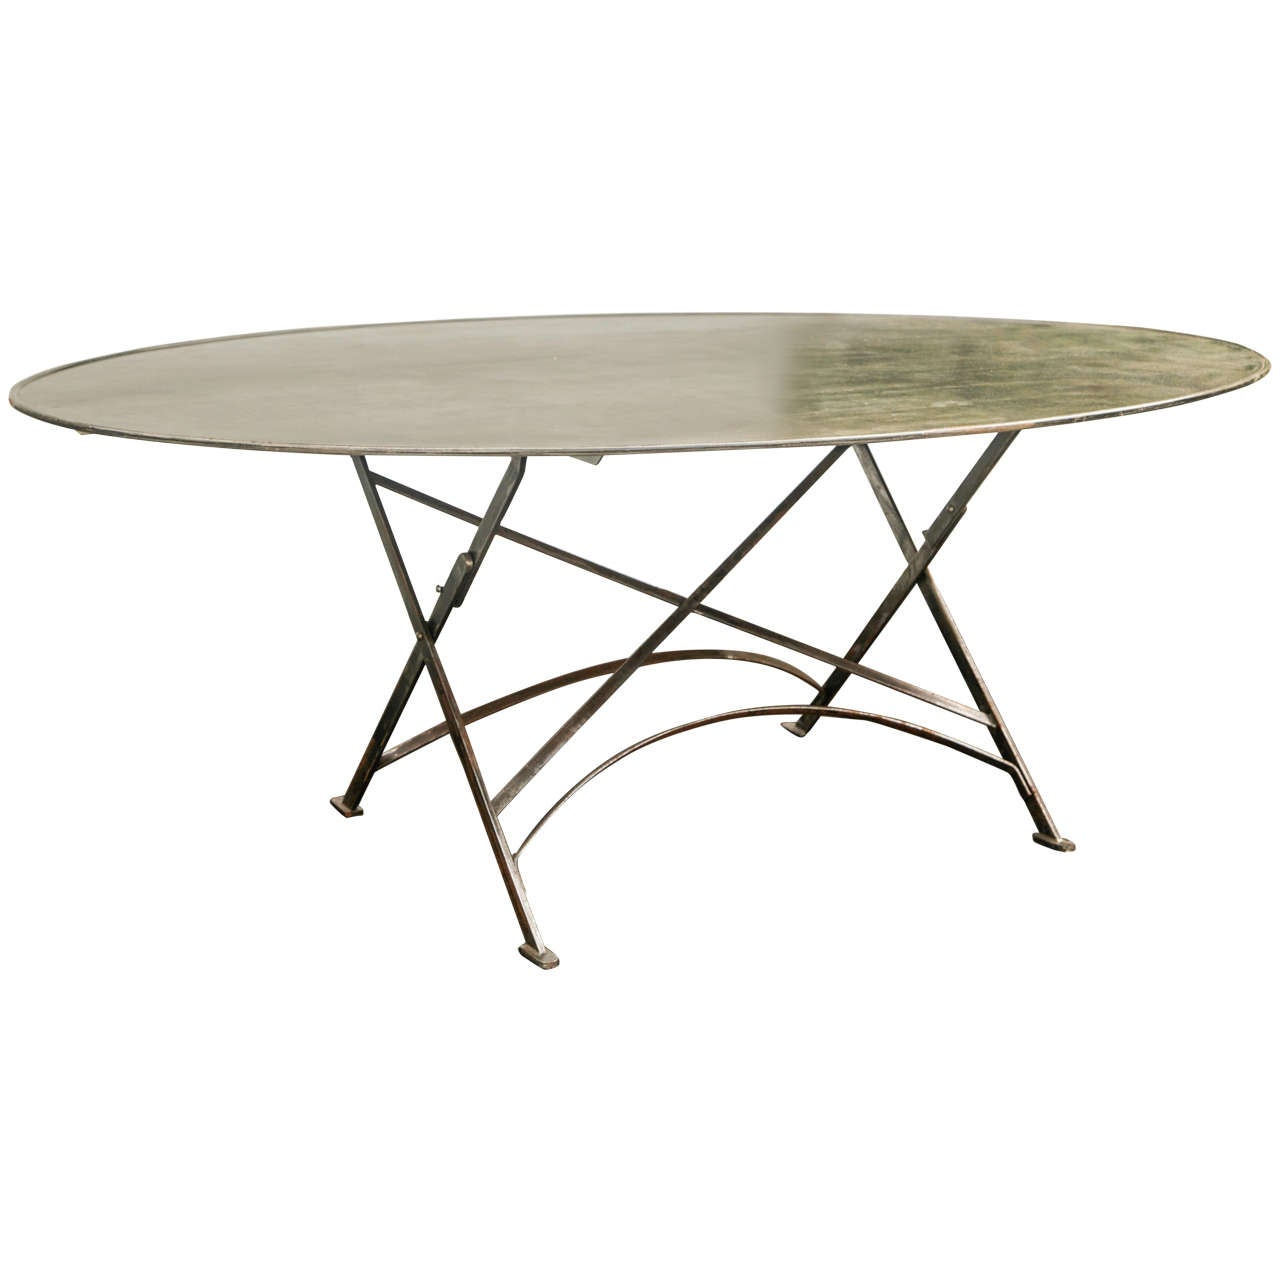 Folding French Metal Table Outdoor or Indoor at 1stdibs